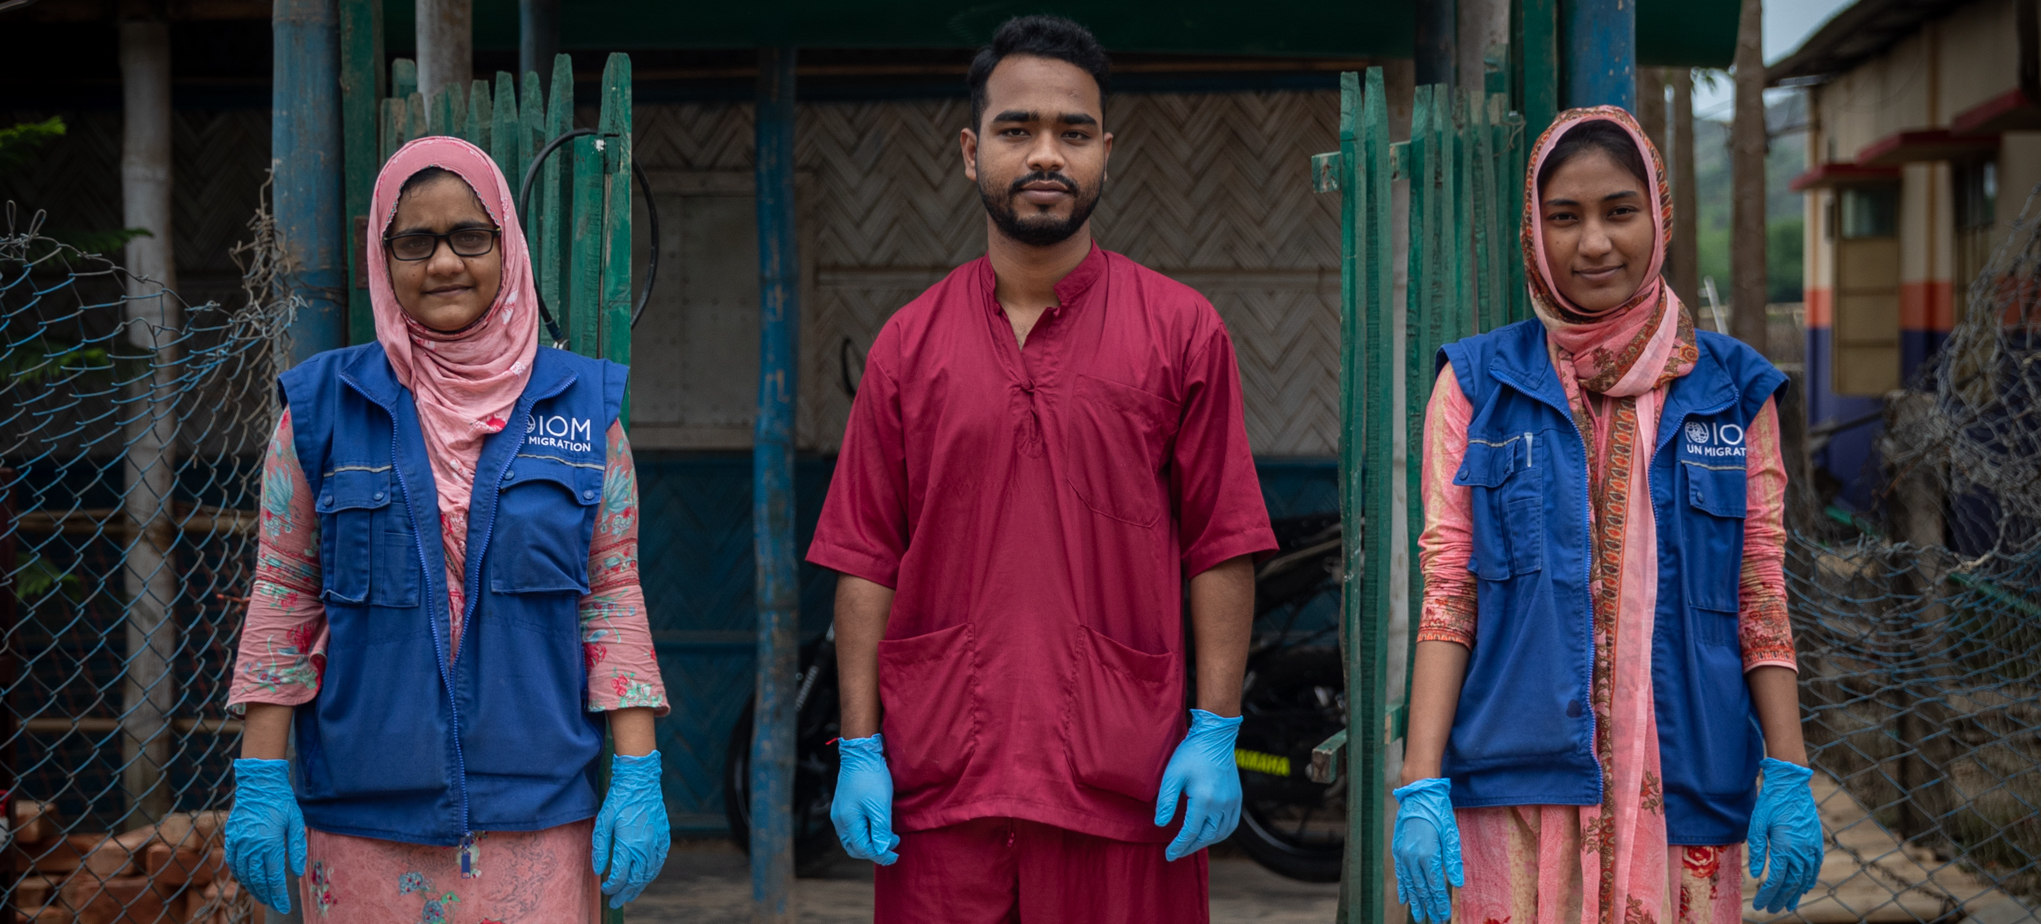 IOM Health staff pictured outside of a repurposed health facility in Cox's Bazar, that will serve as an Isolation and Treatment Center during the COVID-19 pandemic.